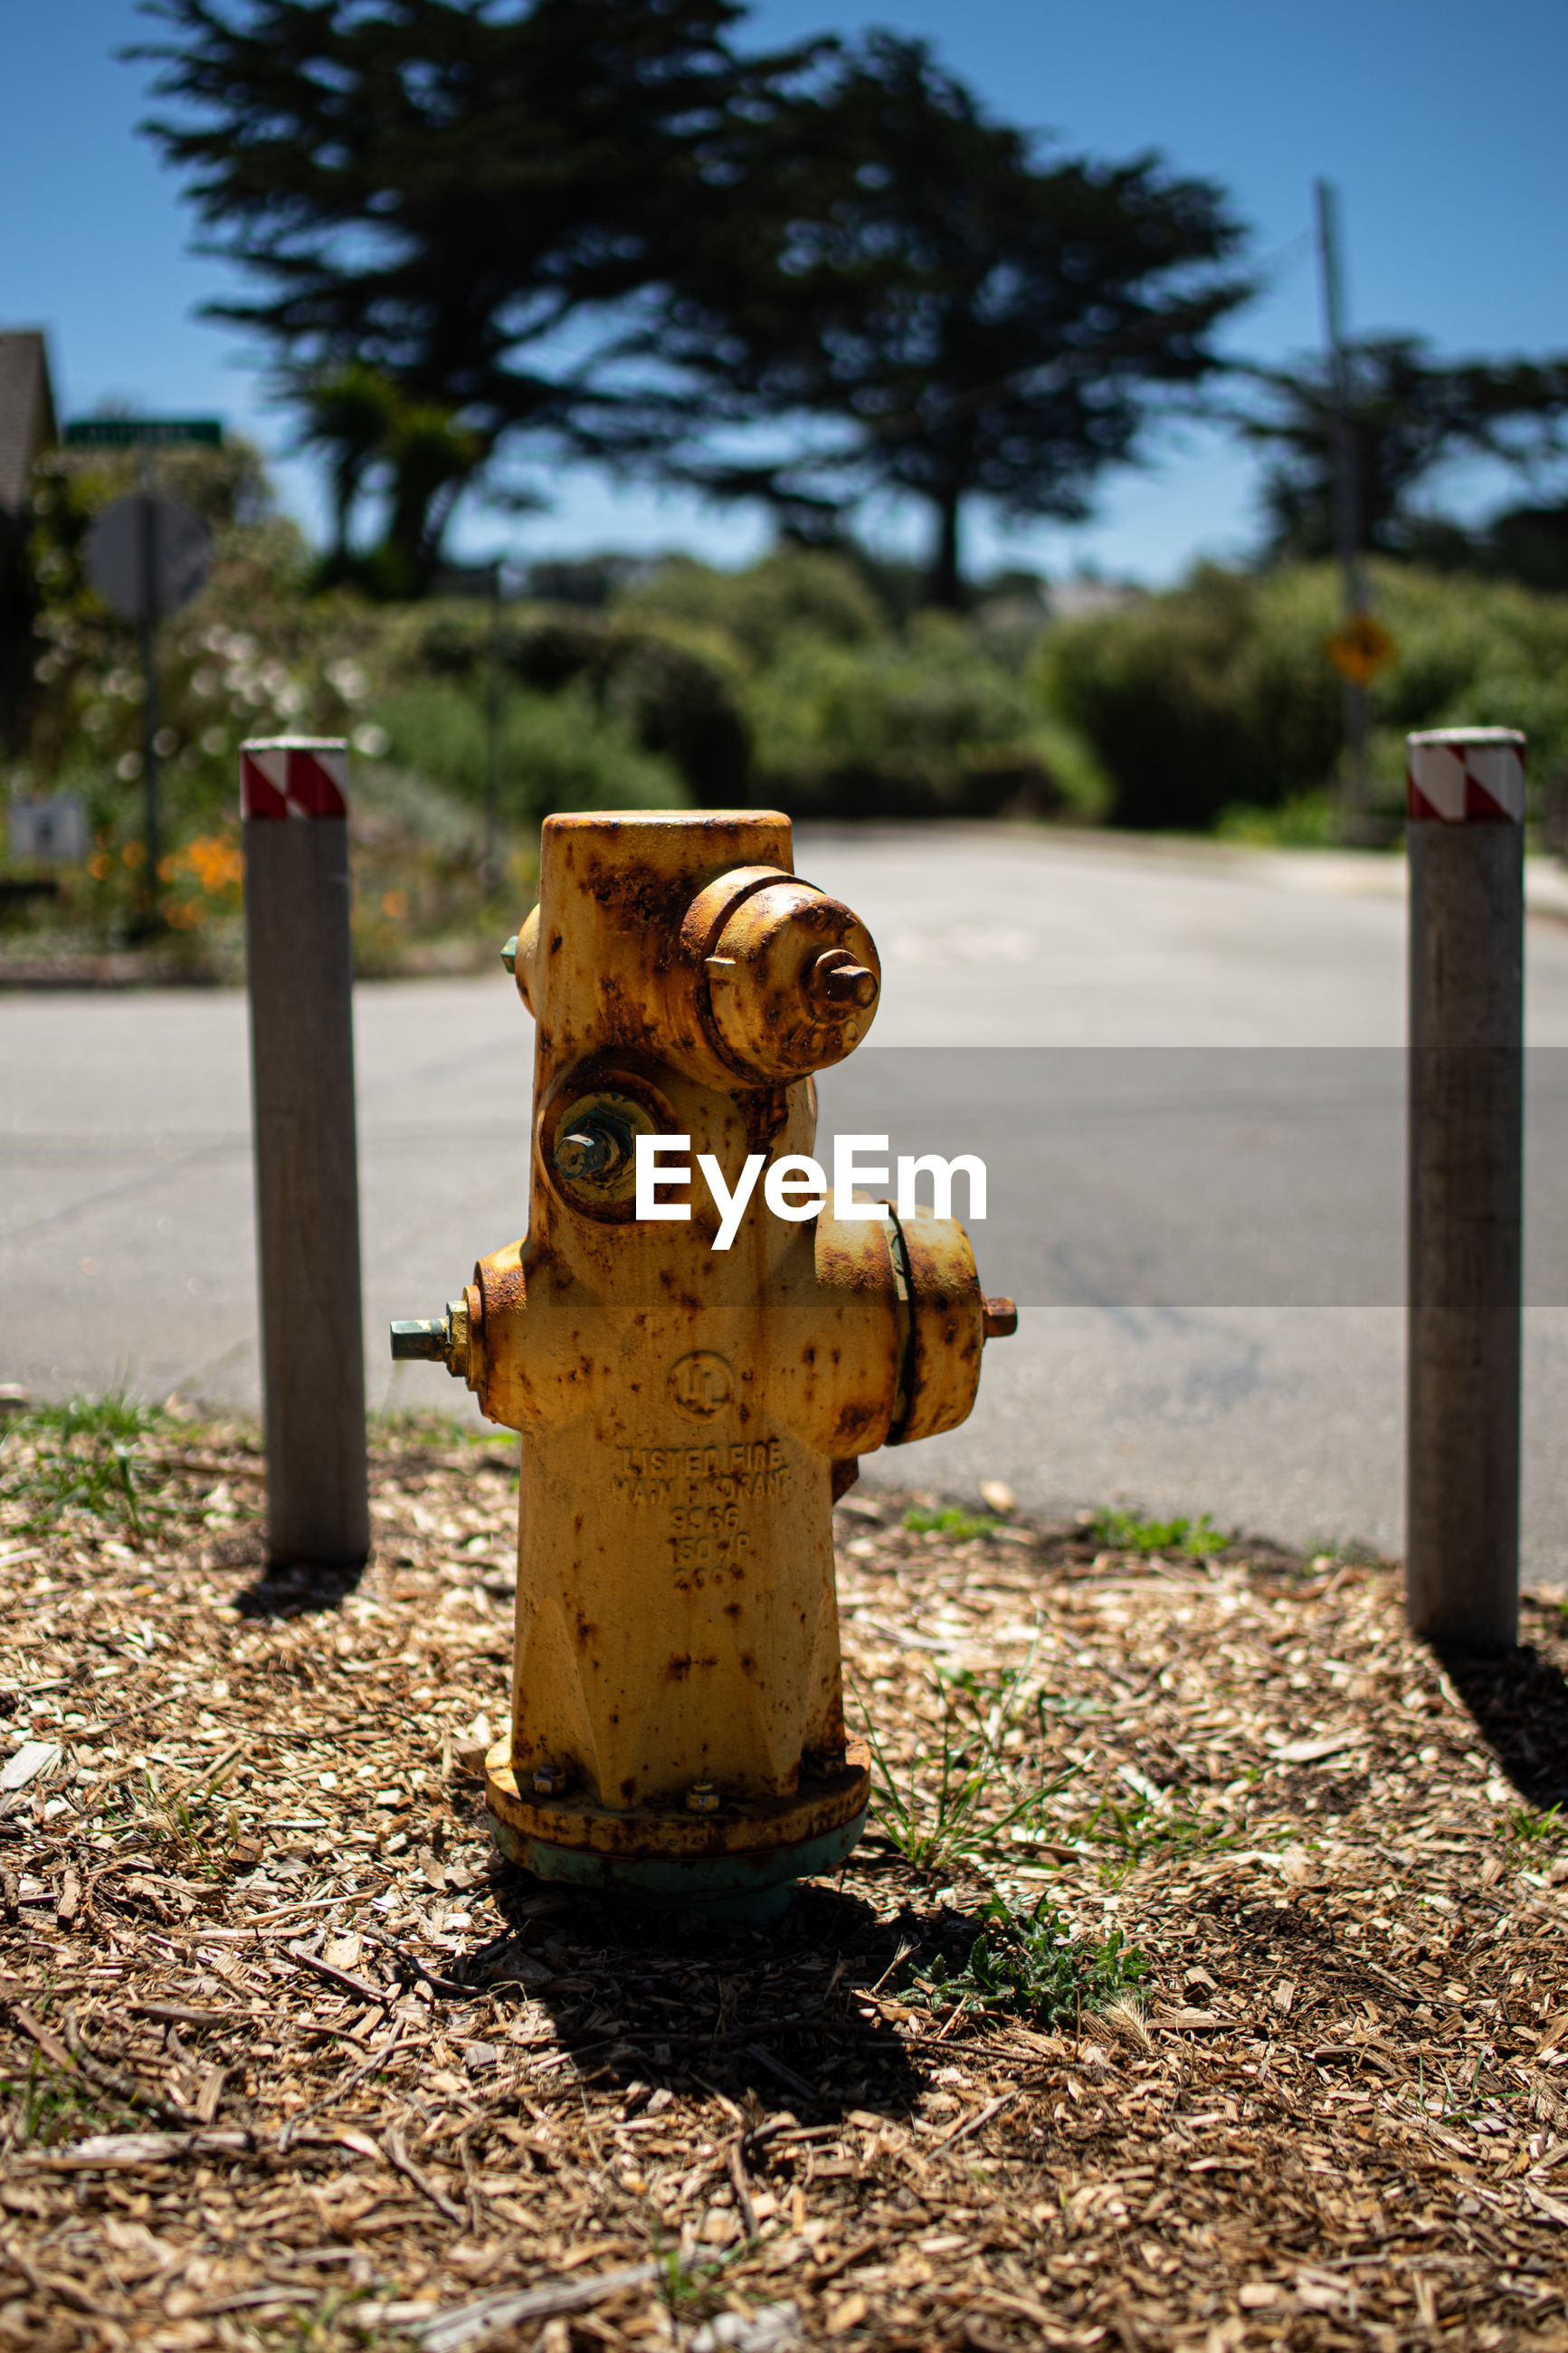 CLOSE-UP OF FIRE HYDRANT ON WOODEN POST IN FIELD